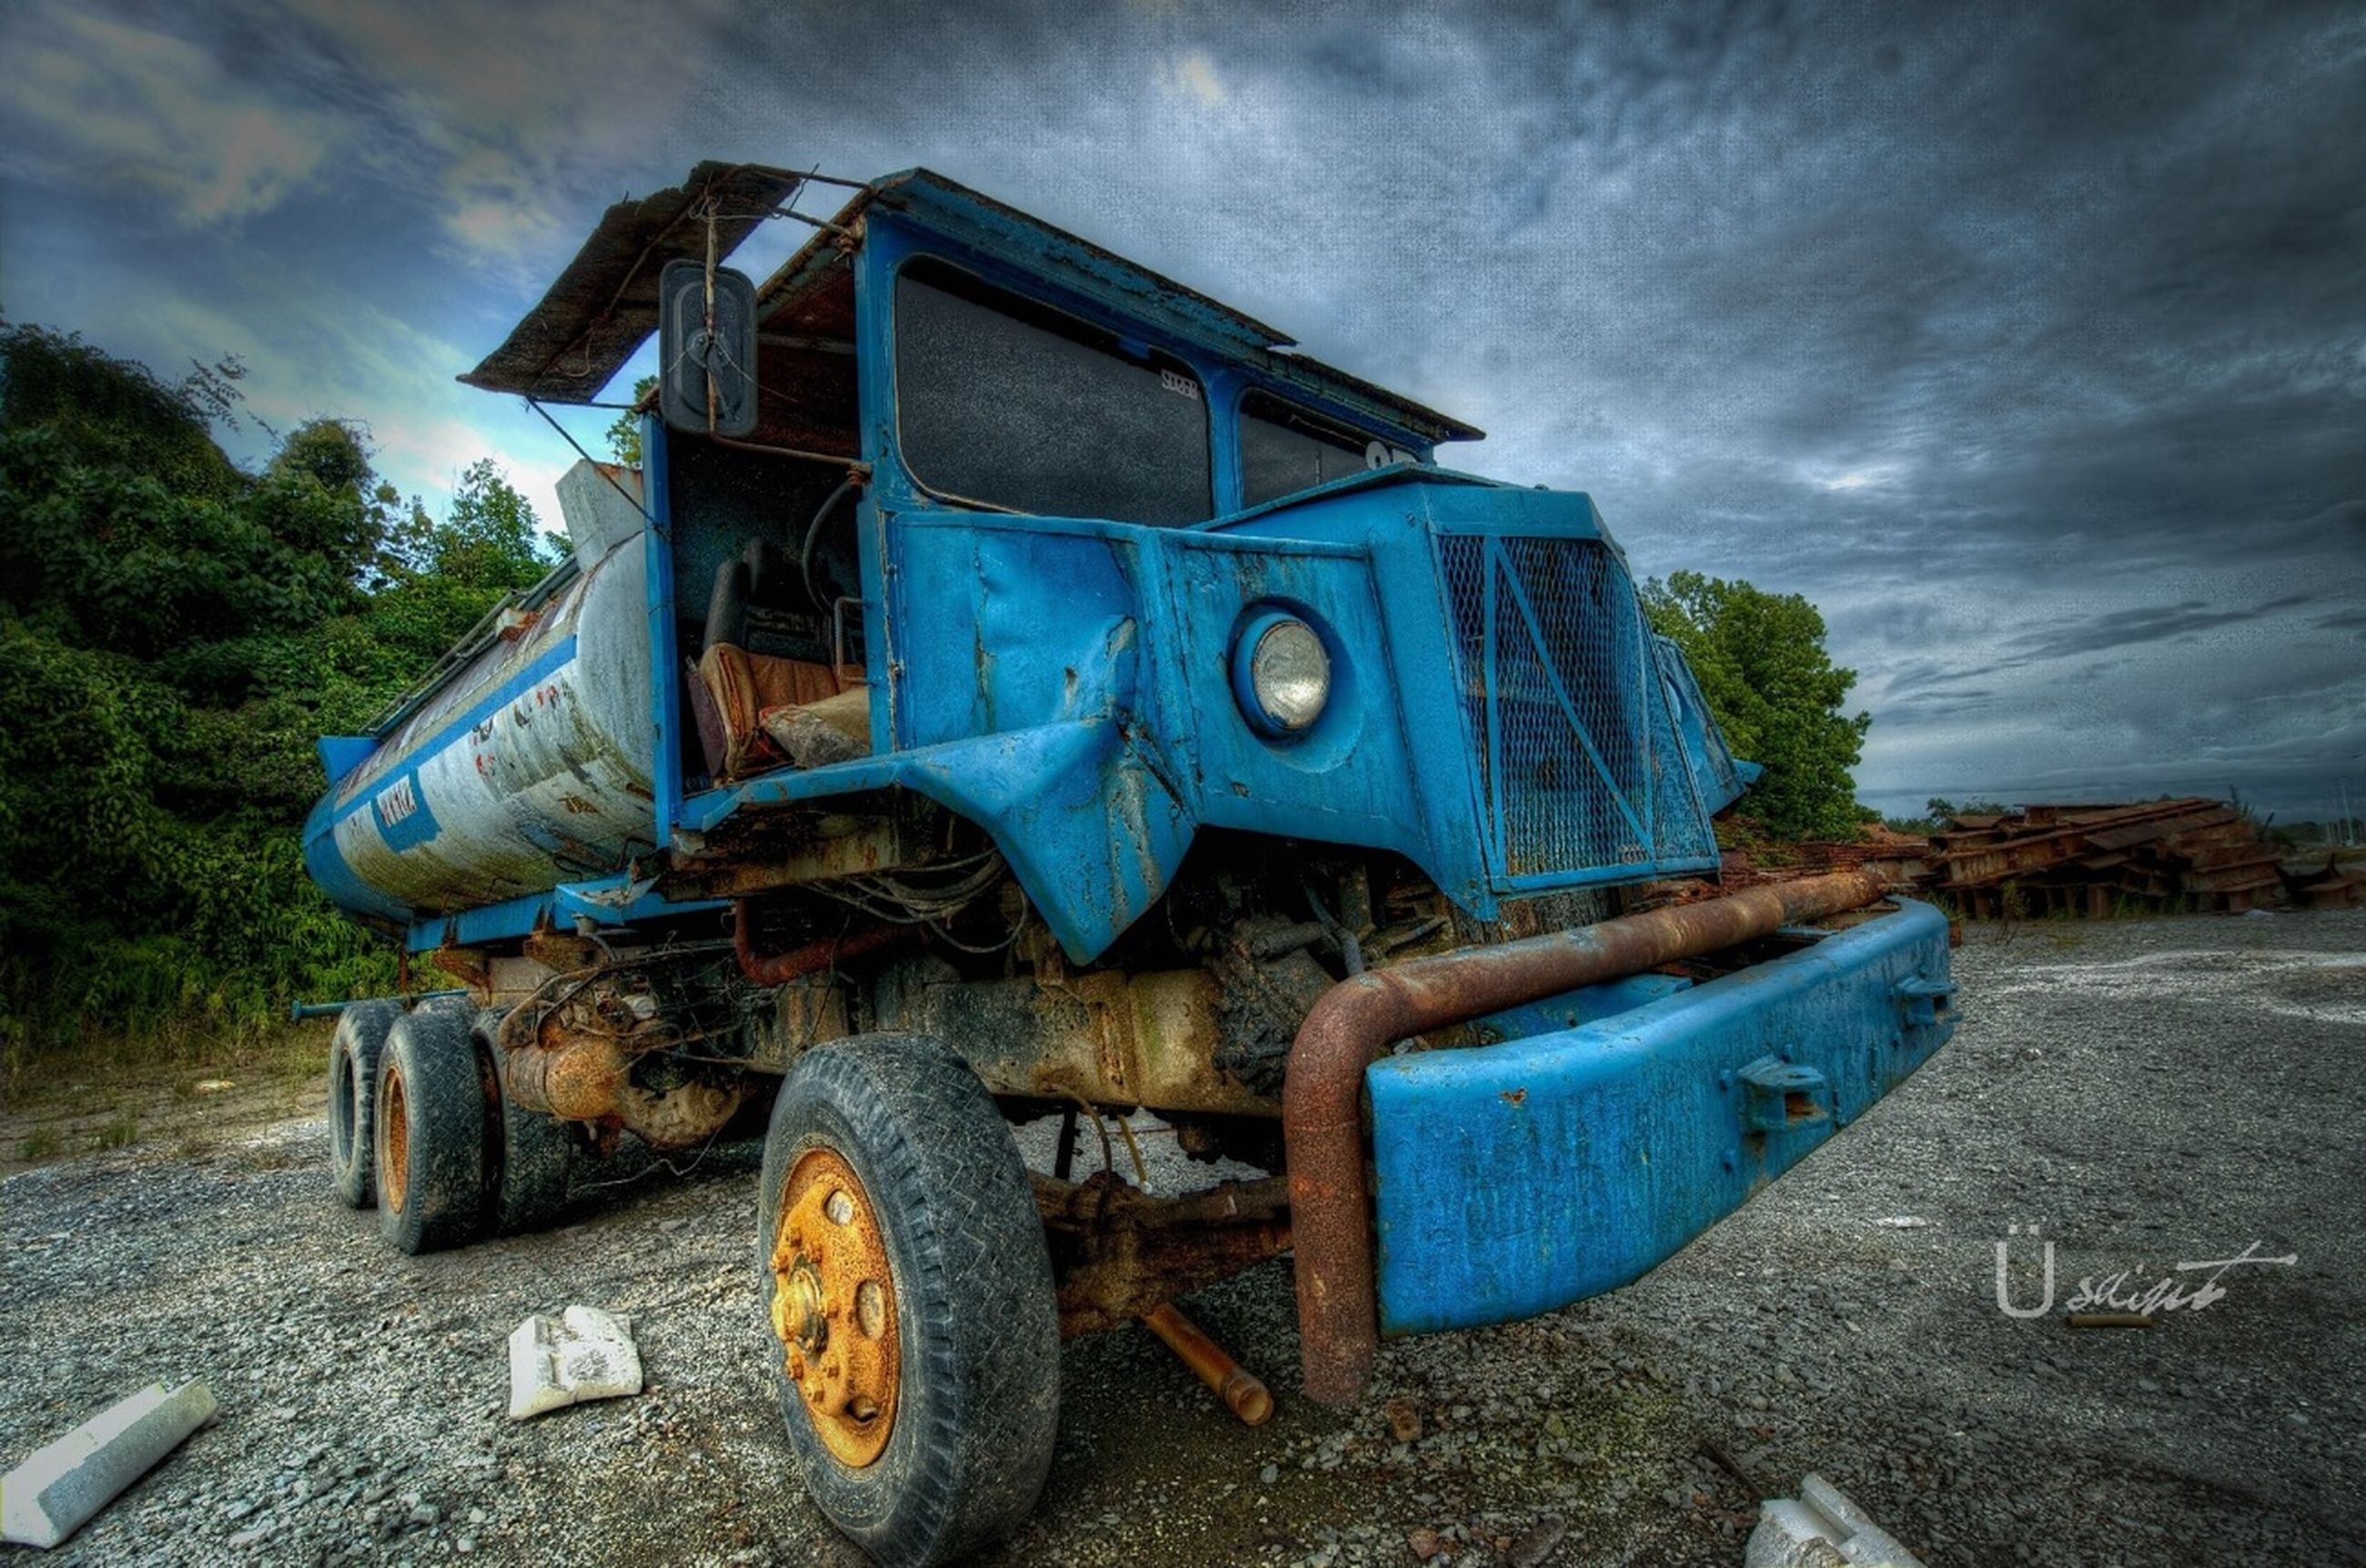 abandoned, obsolete, damaged, transportation, sky, mode of transport, run-down, old, deterioration, rusty, land vehicle, cloud - sky, bad condition, weathered, field, broken, stationary, no people, outdoors, moored